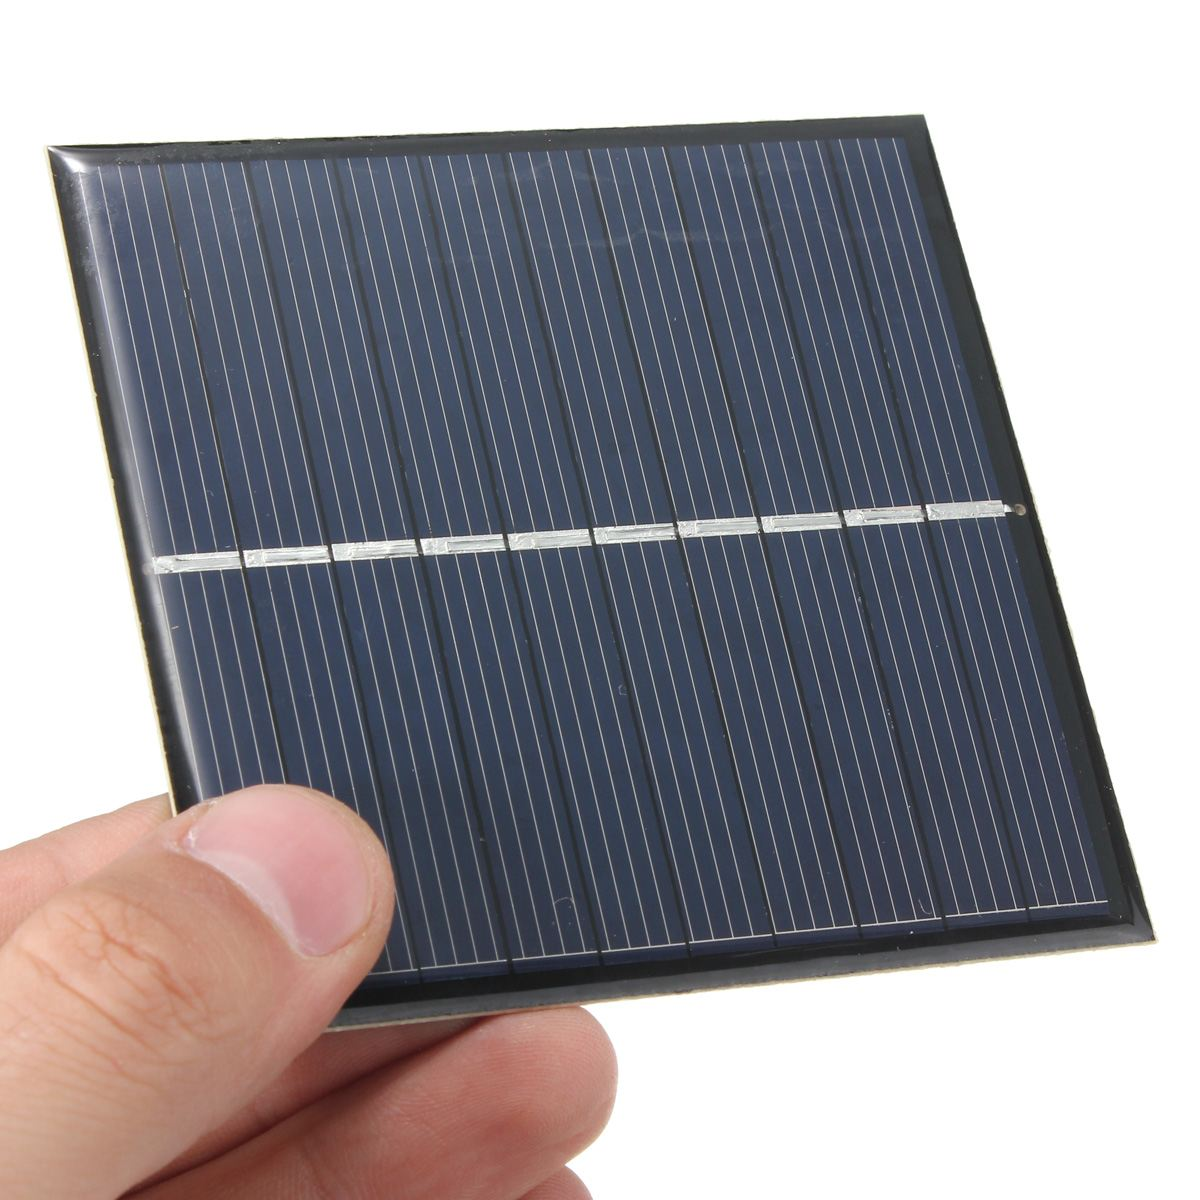 LEORY 5V 0.87W Solar Panel DIY Battery Charger Power Bank Polycrystalline Silicon 84*84*3.0mm MINI Solar Cell For System Supply